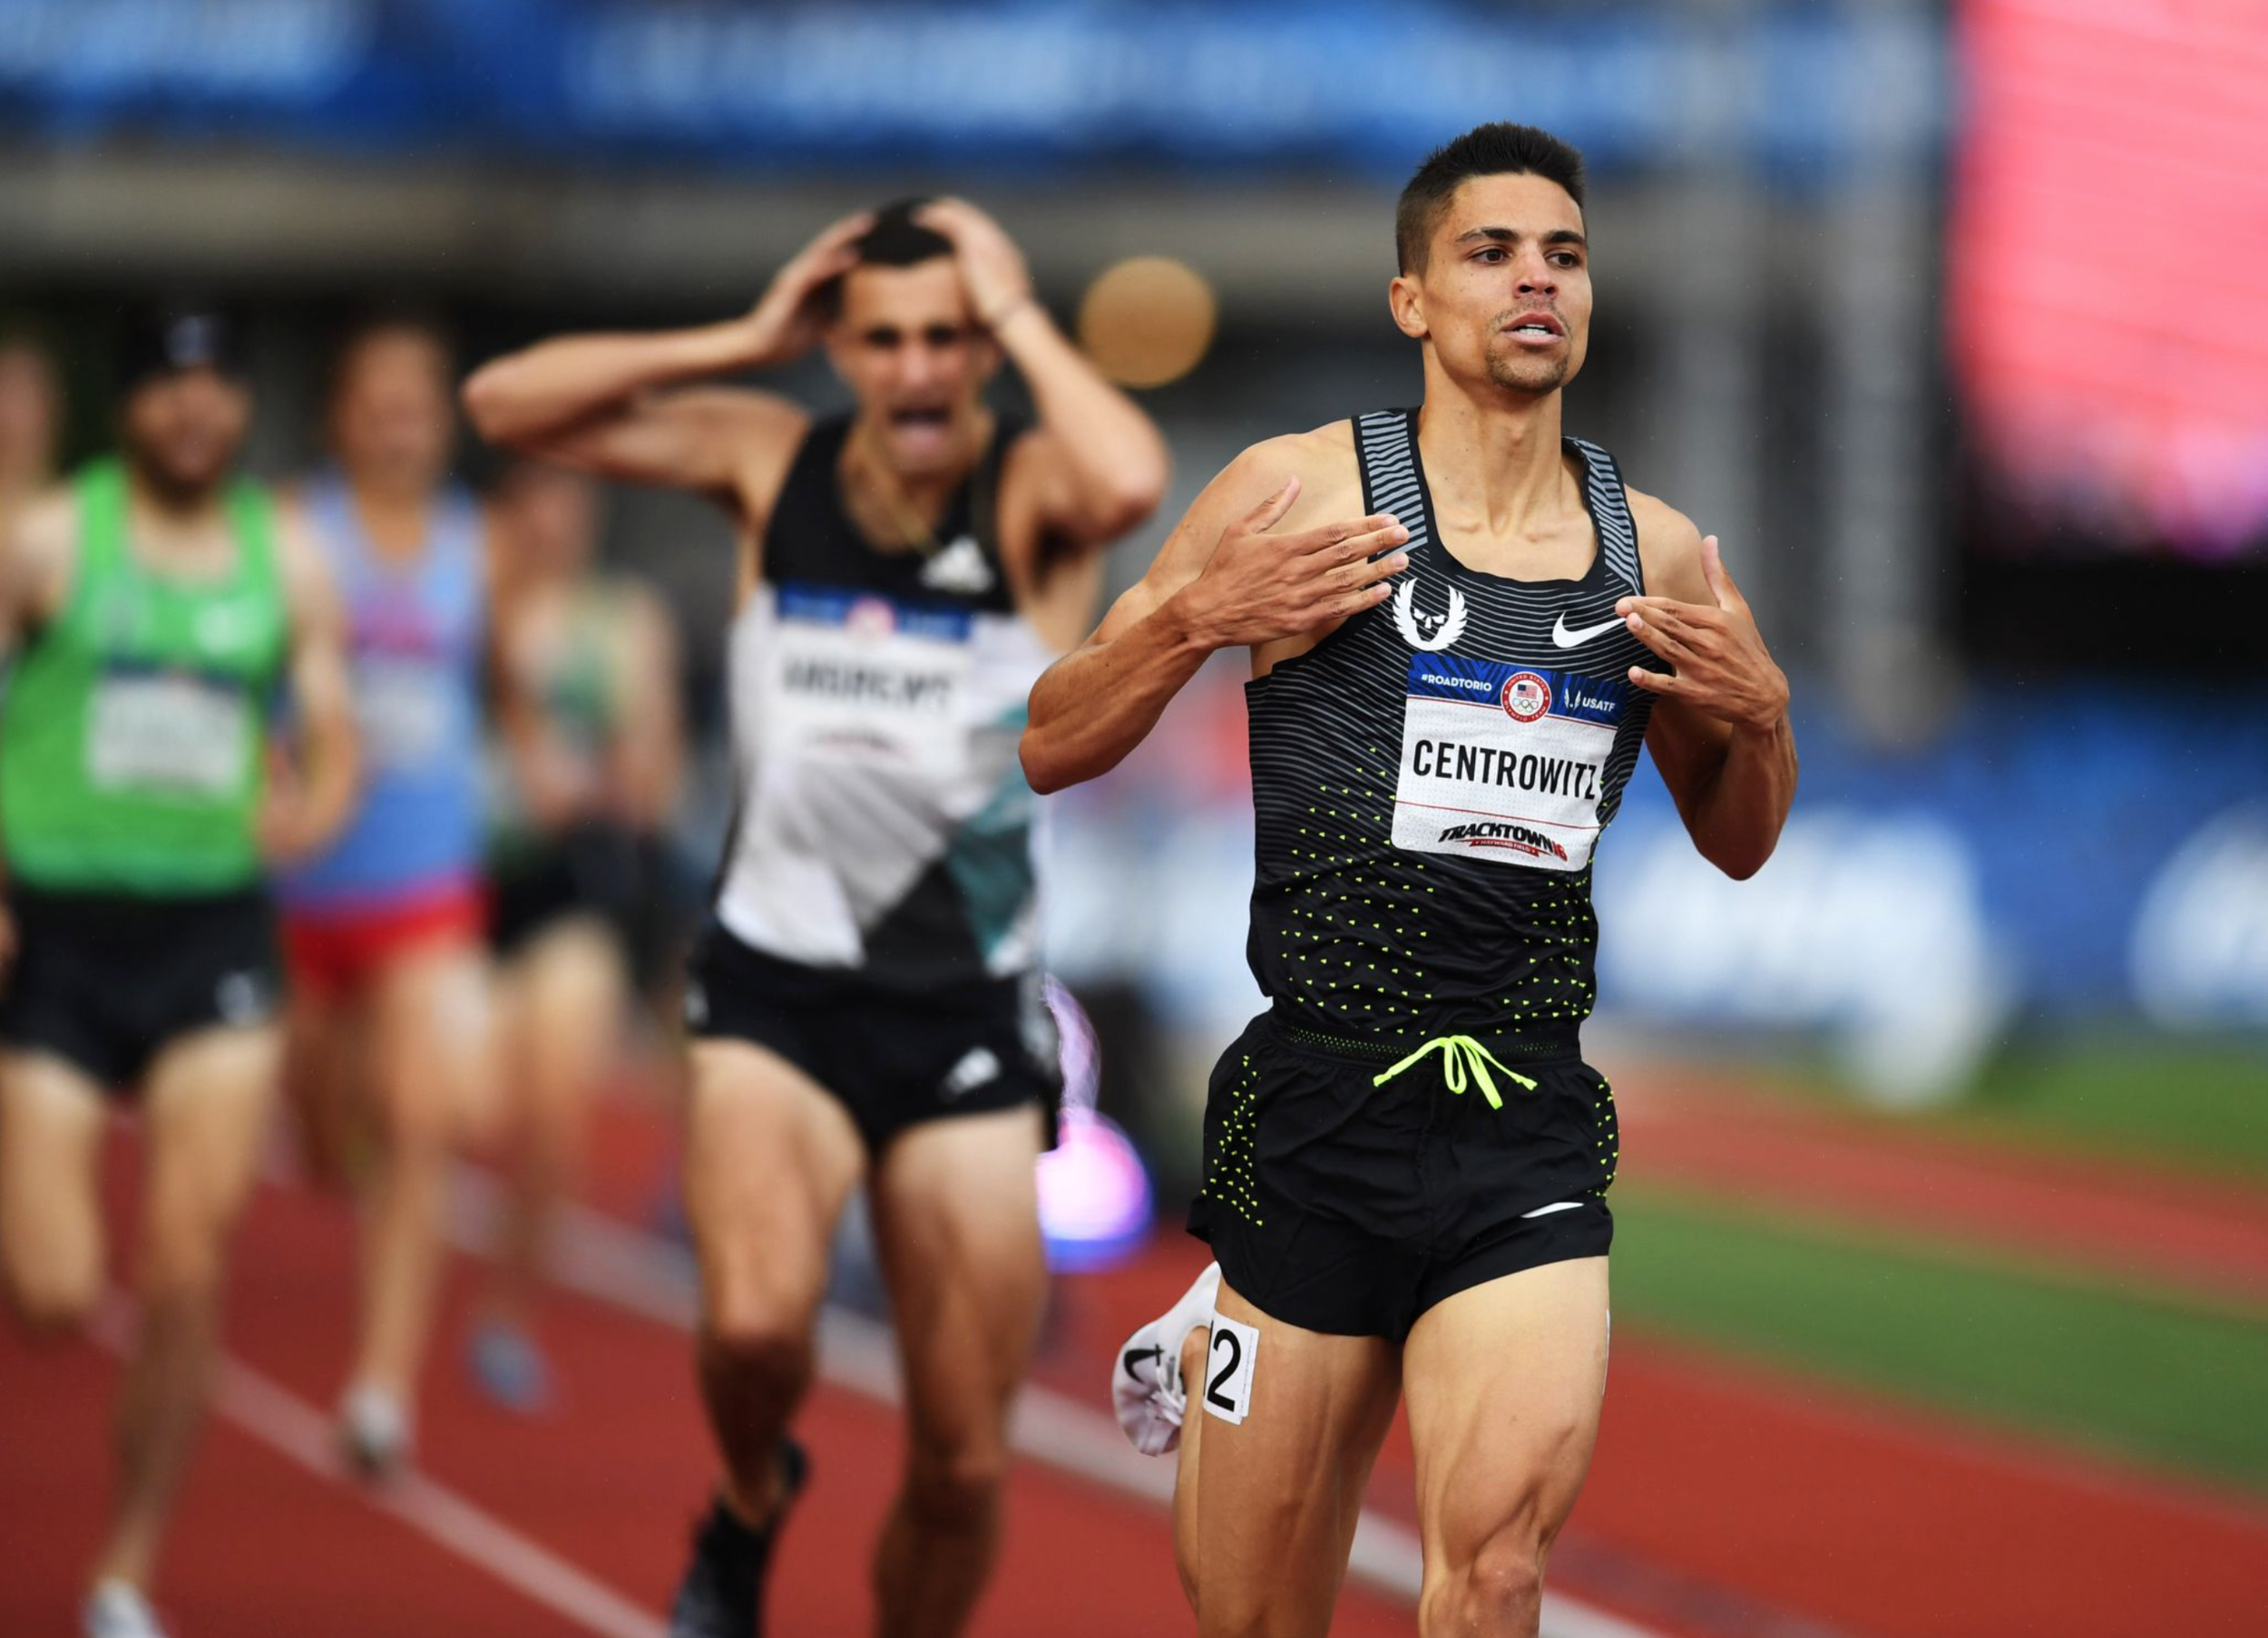 """""""Like father, like son."""" It's a tattoo Matthew Centrowitz has in tribute to his father, Matt Sr., who was an All-American runner himself in college. Matt Jr. won the 1,500-meters at trials."""